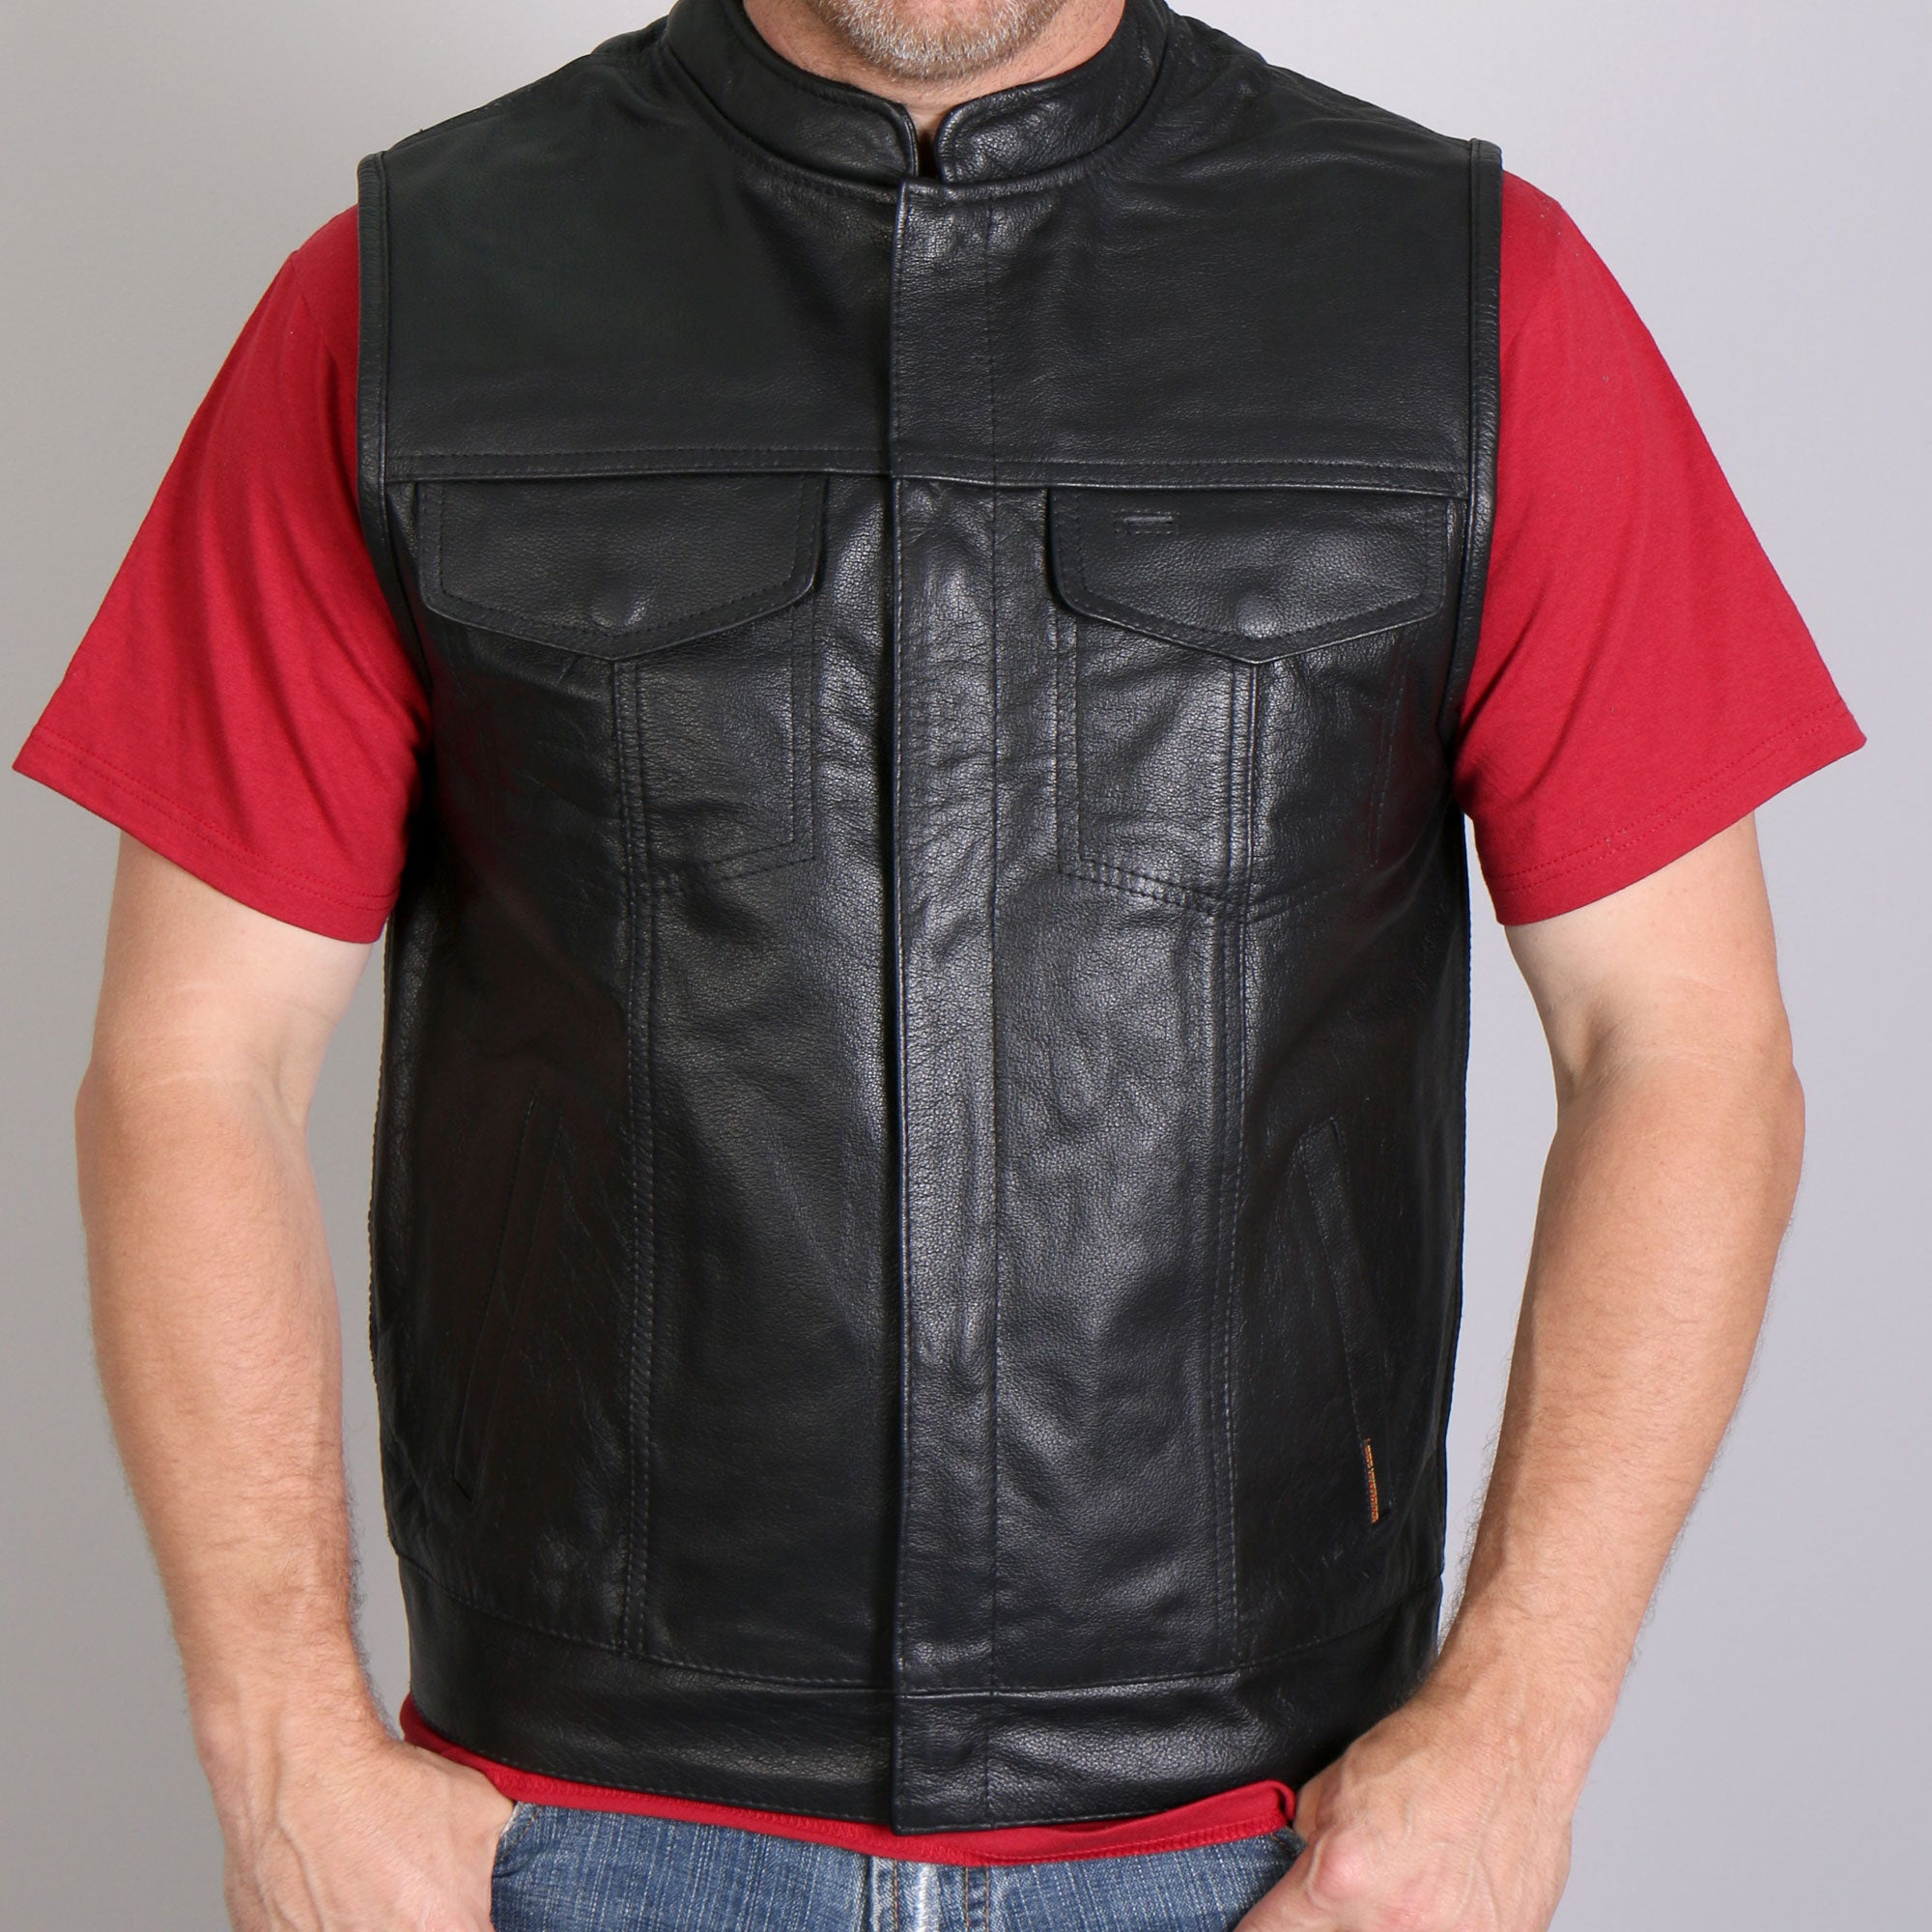 Hot Leathers Men's 10 Pocket Cowhide Leather Vest